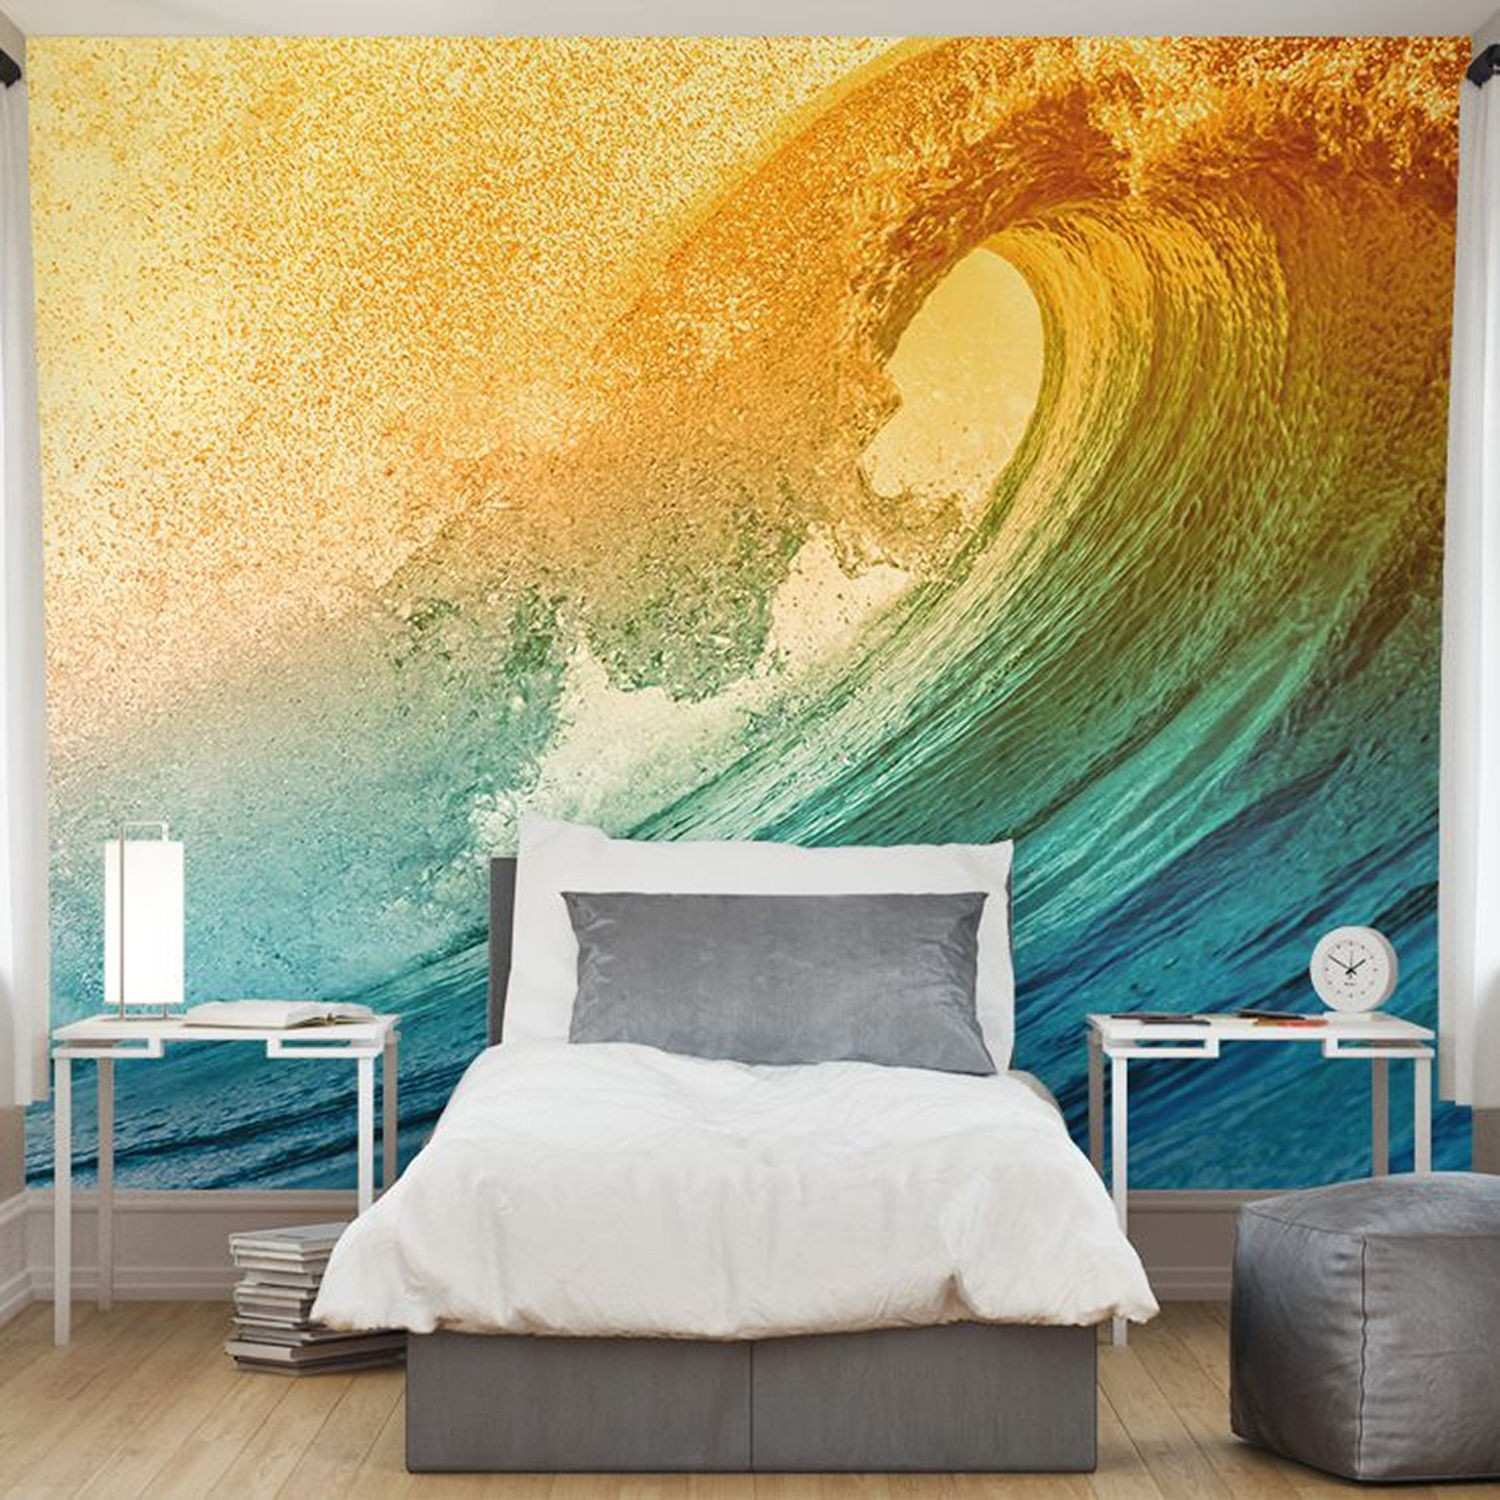 Colorful Winners Wall Decor Image Collection Art & Wall Decor